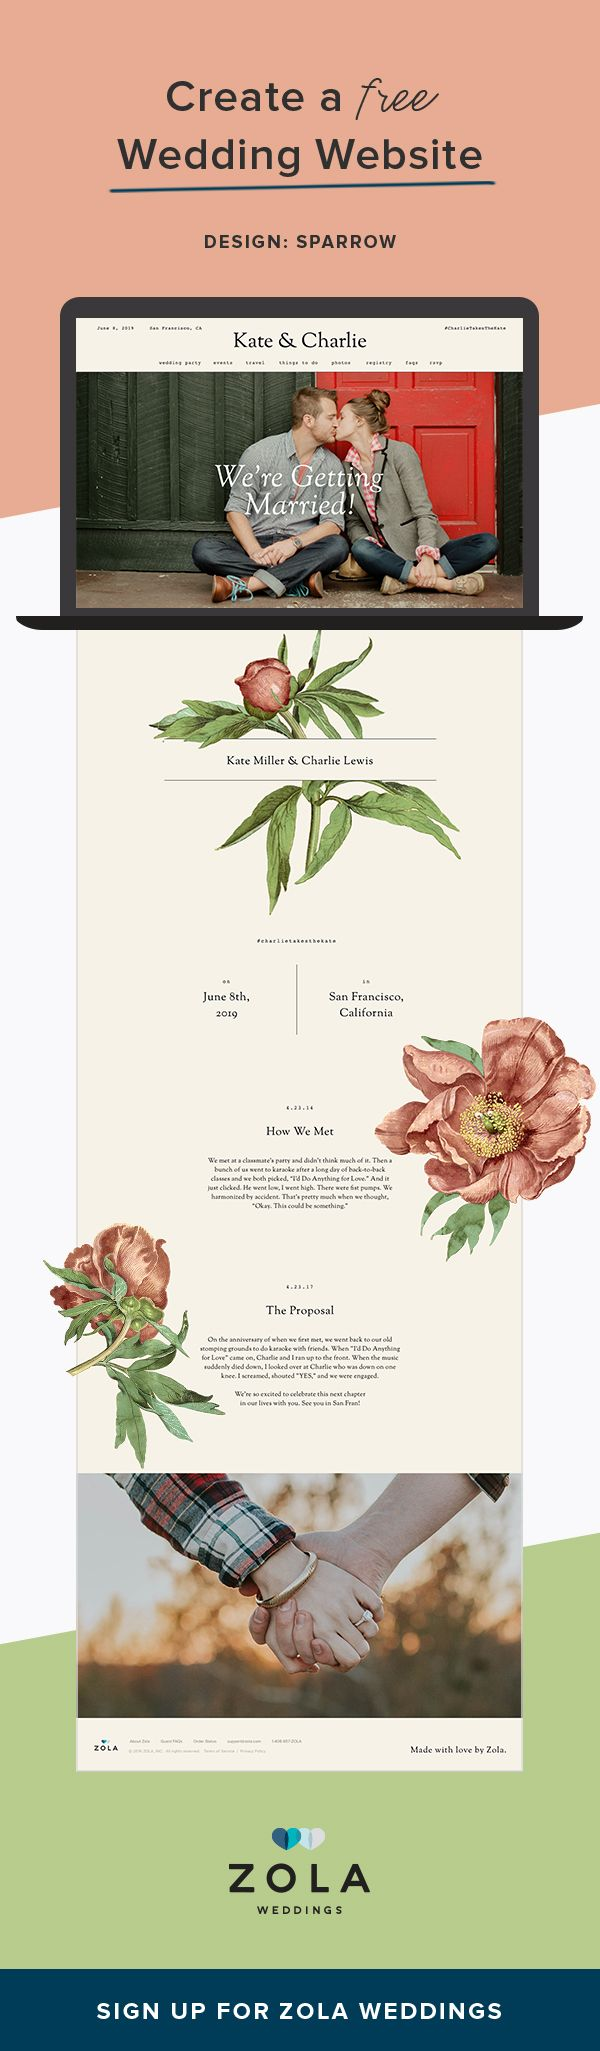 Cheapest Place Wedding Invitations